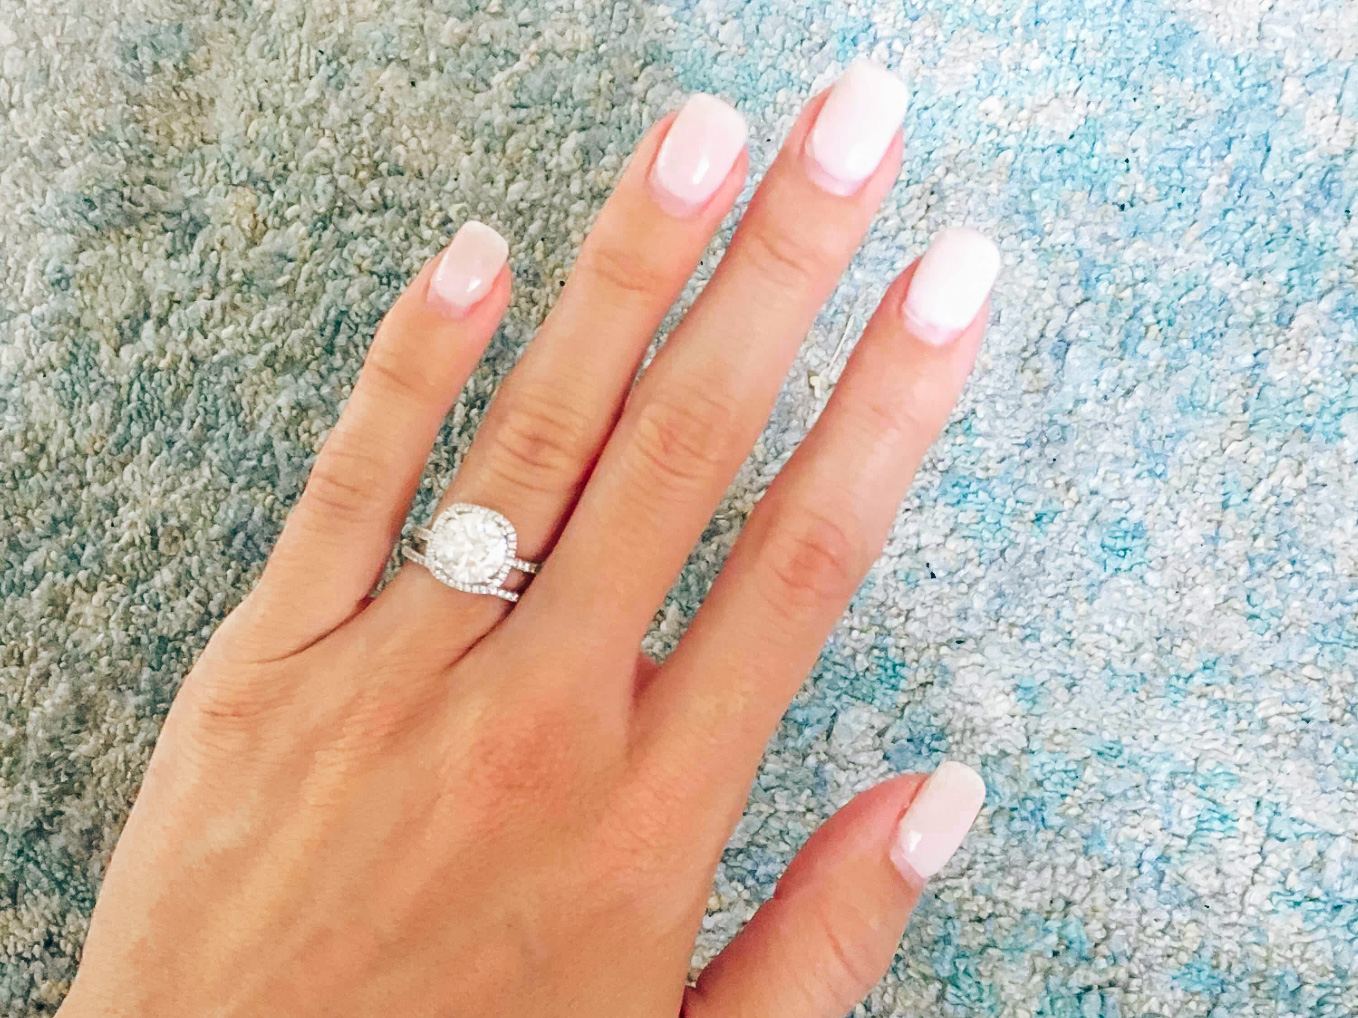 Best At Home Manicure Solutions For Social Distancing Quarantine